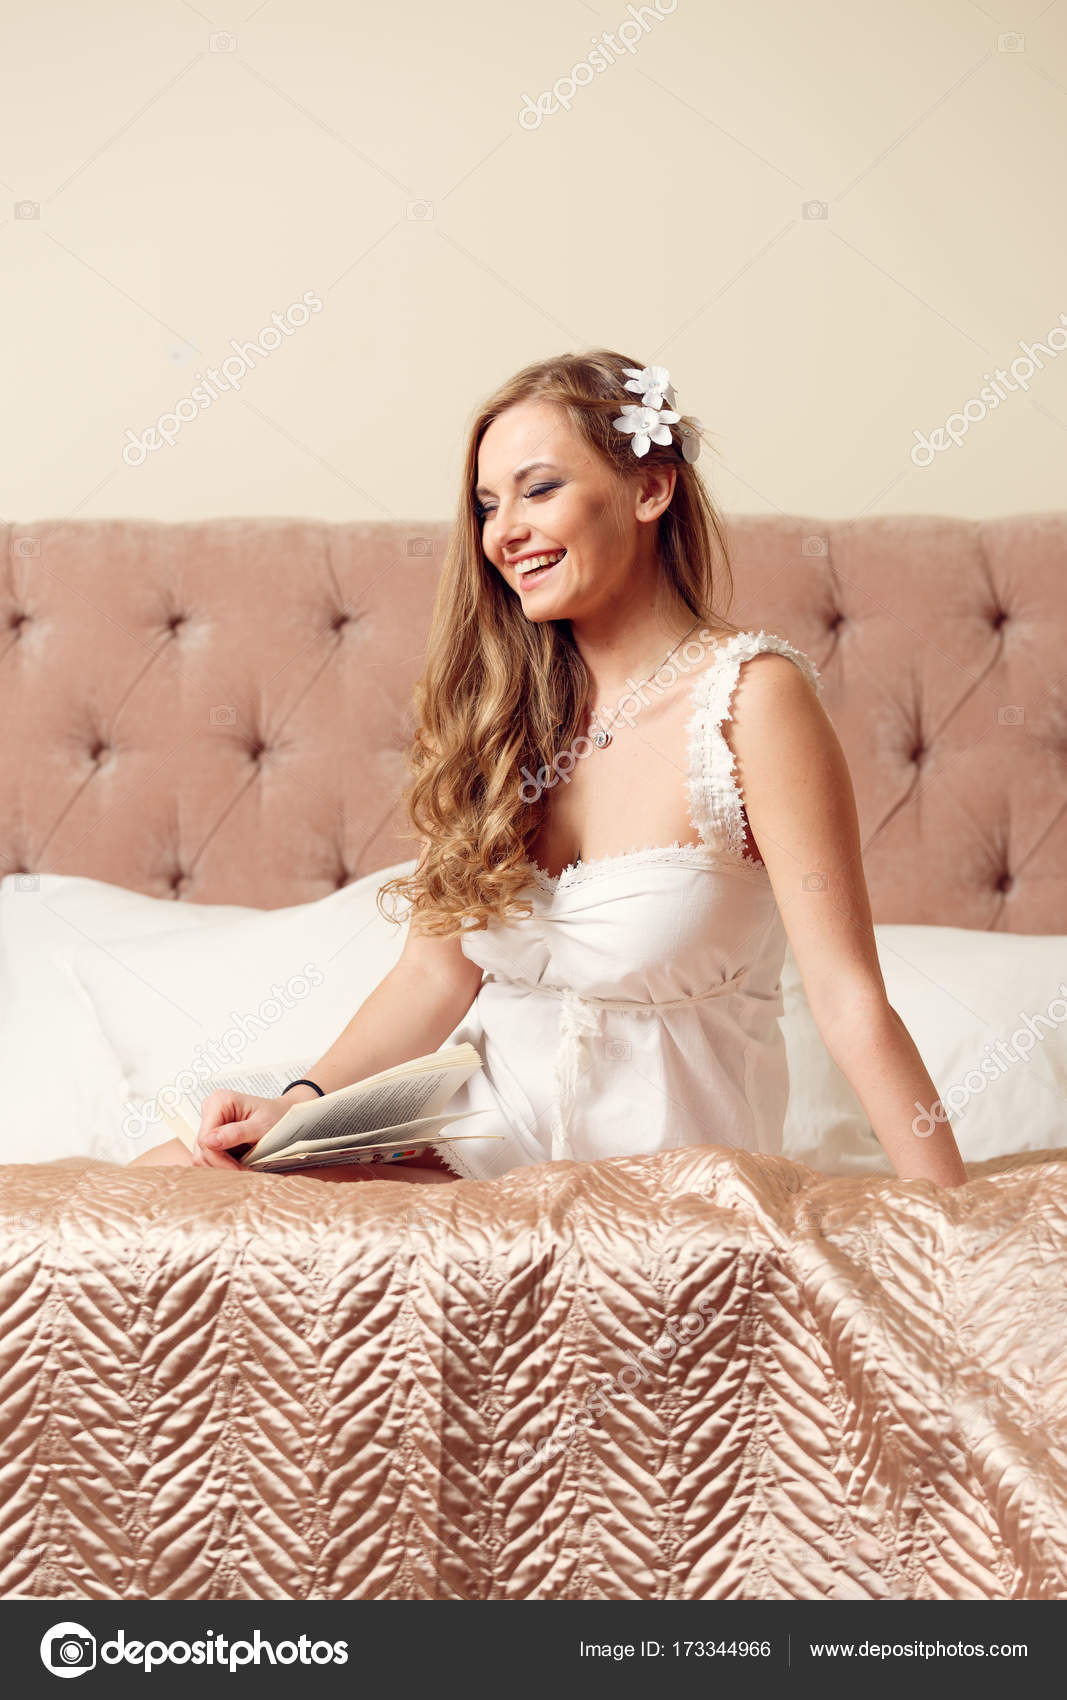 image of happy woman in white negligee sitting on bed — stock photo